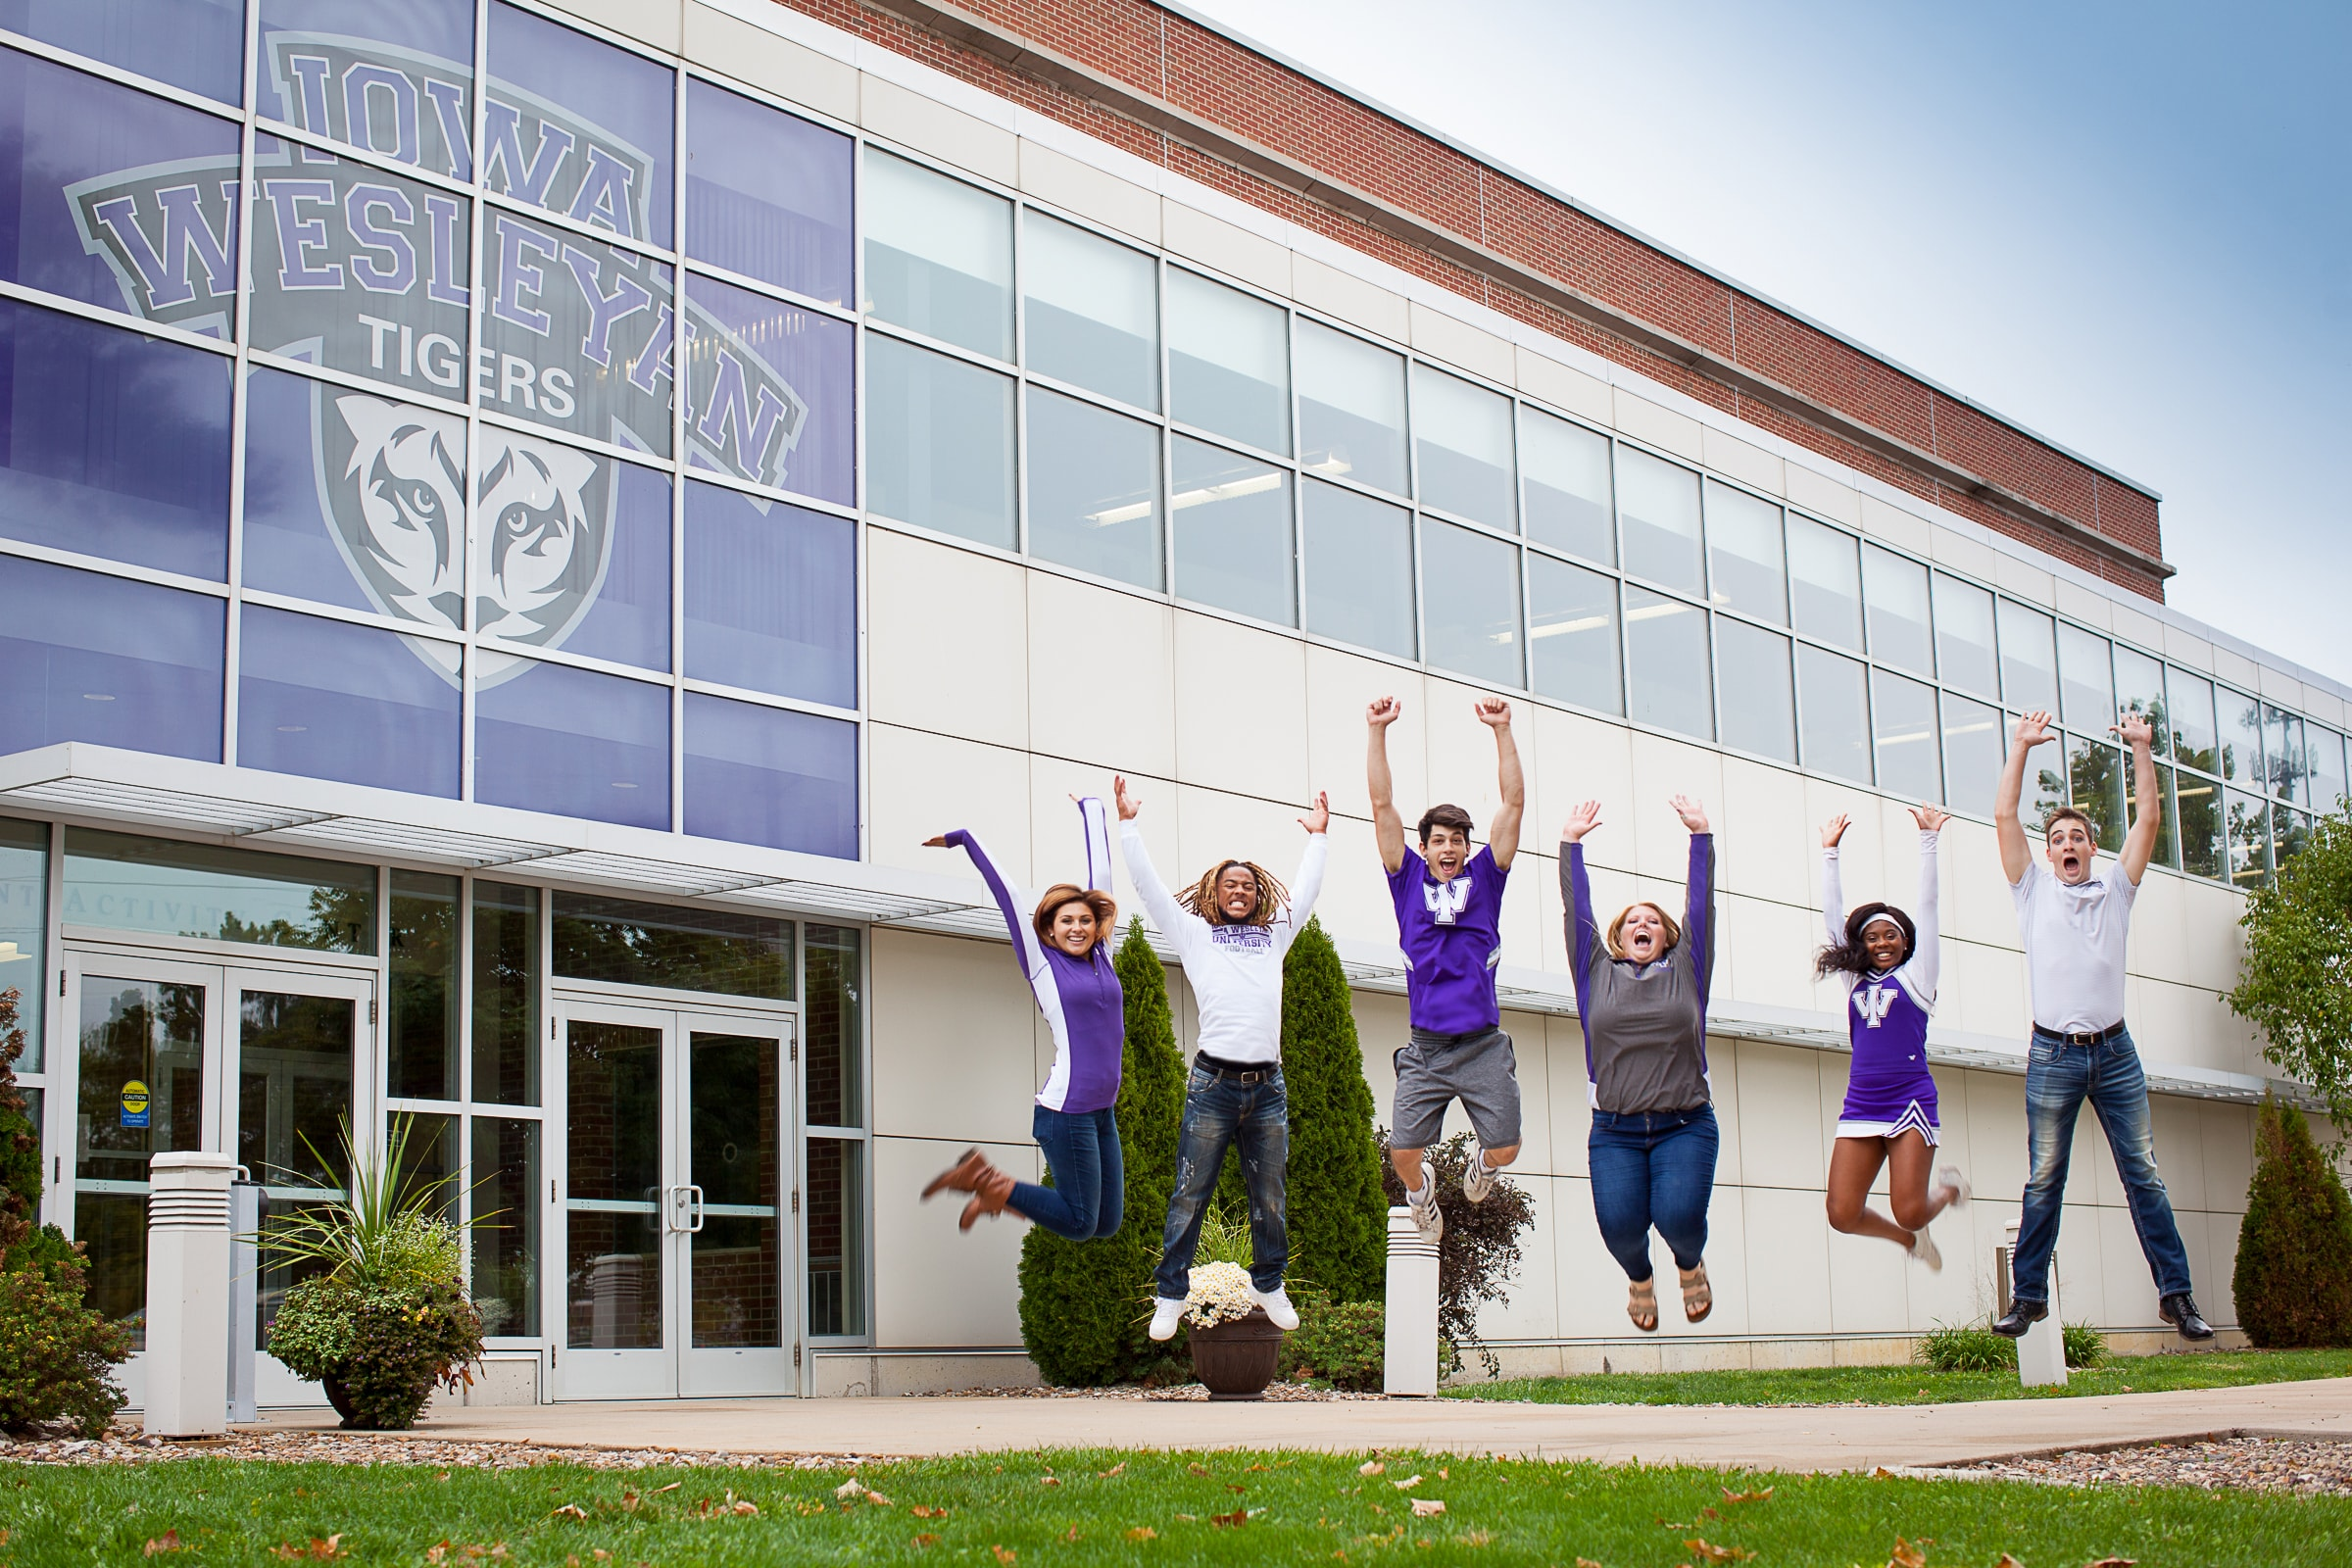 Students from Iowa Wesleyan University jump in this campus shot in Mount Pleasant, Iowa. Photo courtesy of Iowa Wesleyan University.